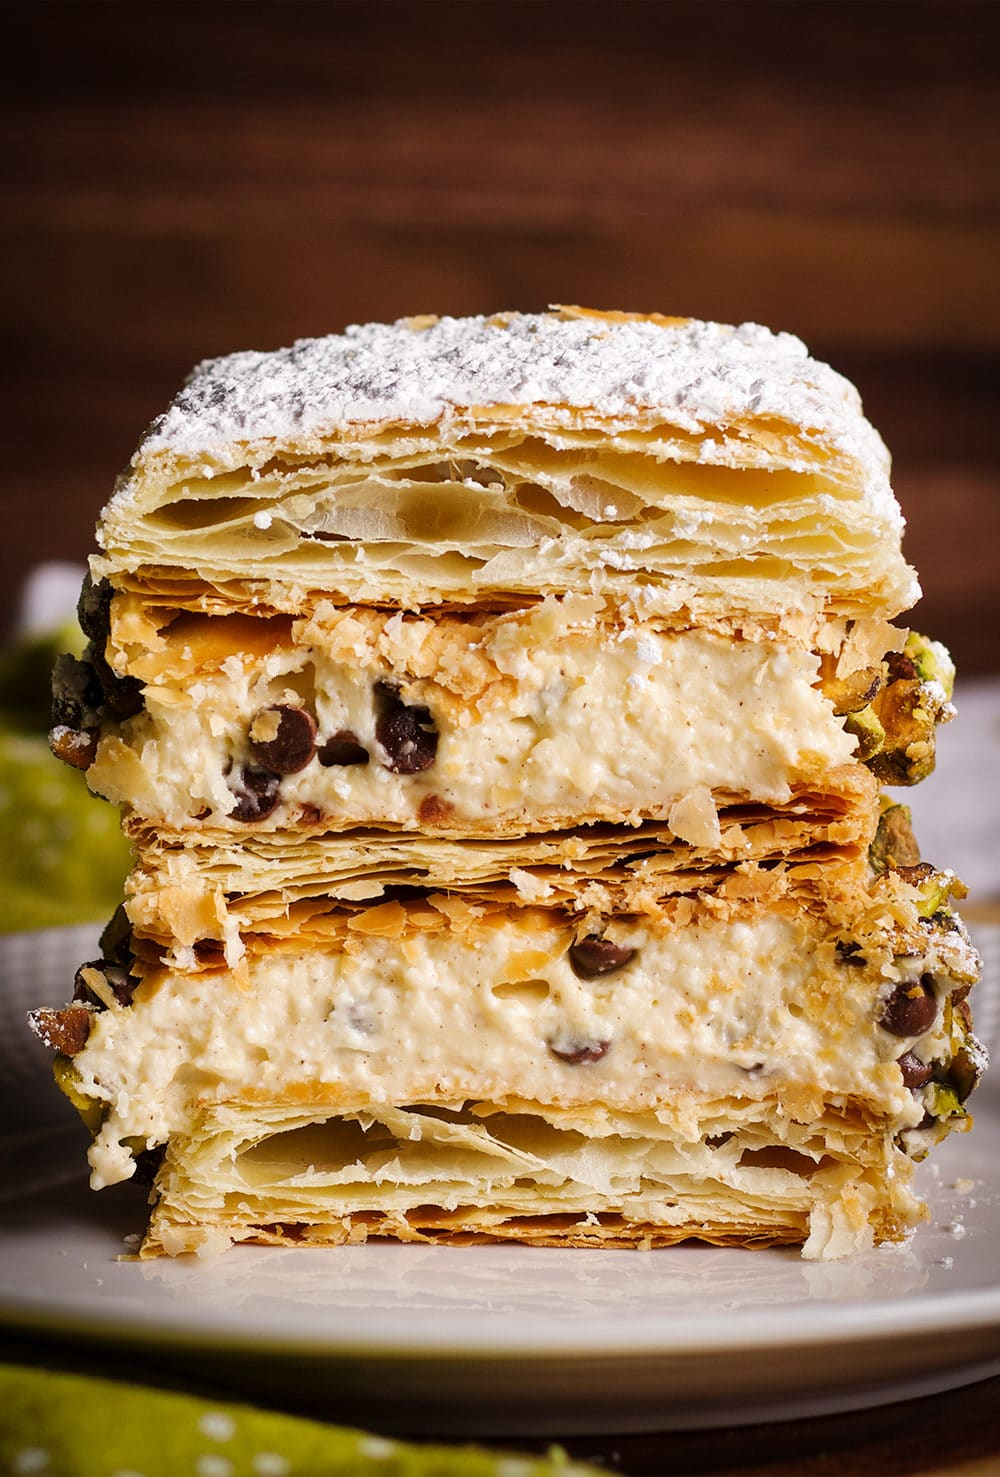 A slice of Cannoli Napoleon on a plate, ready to eat.